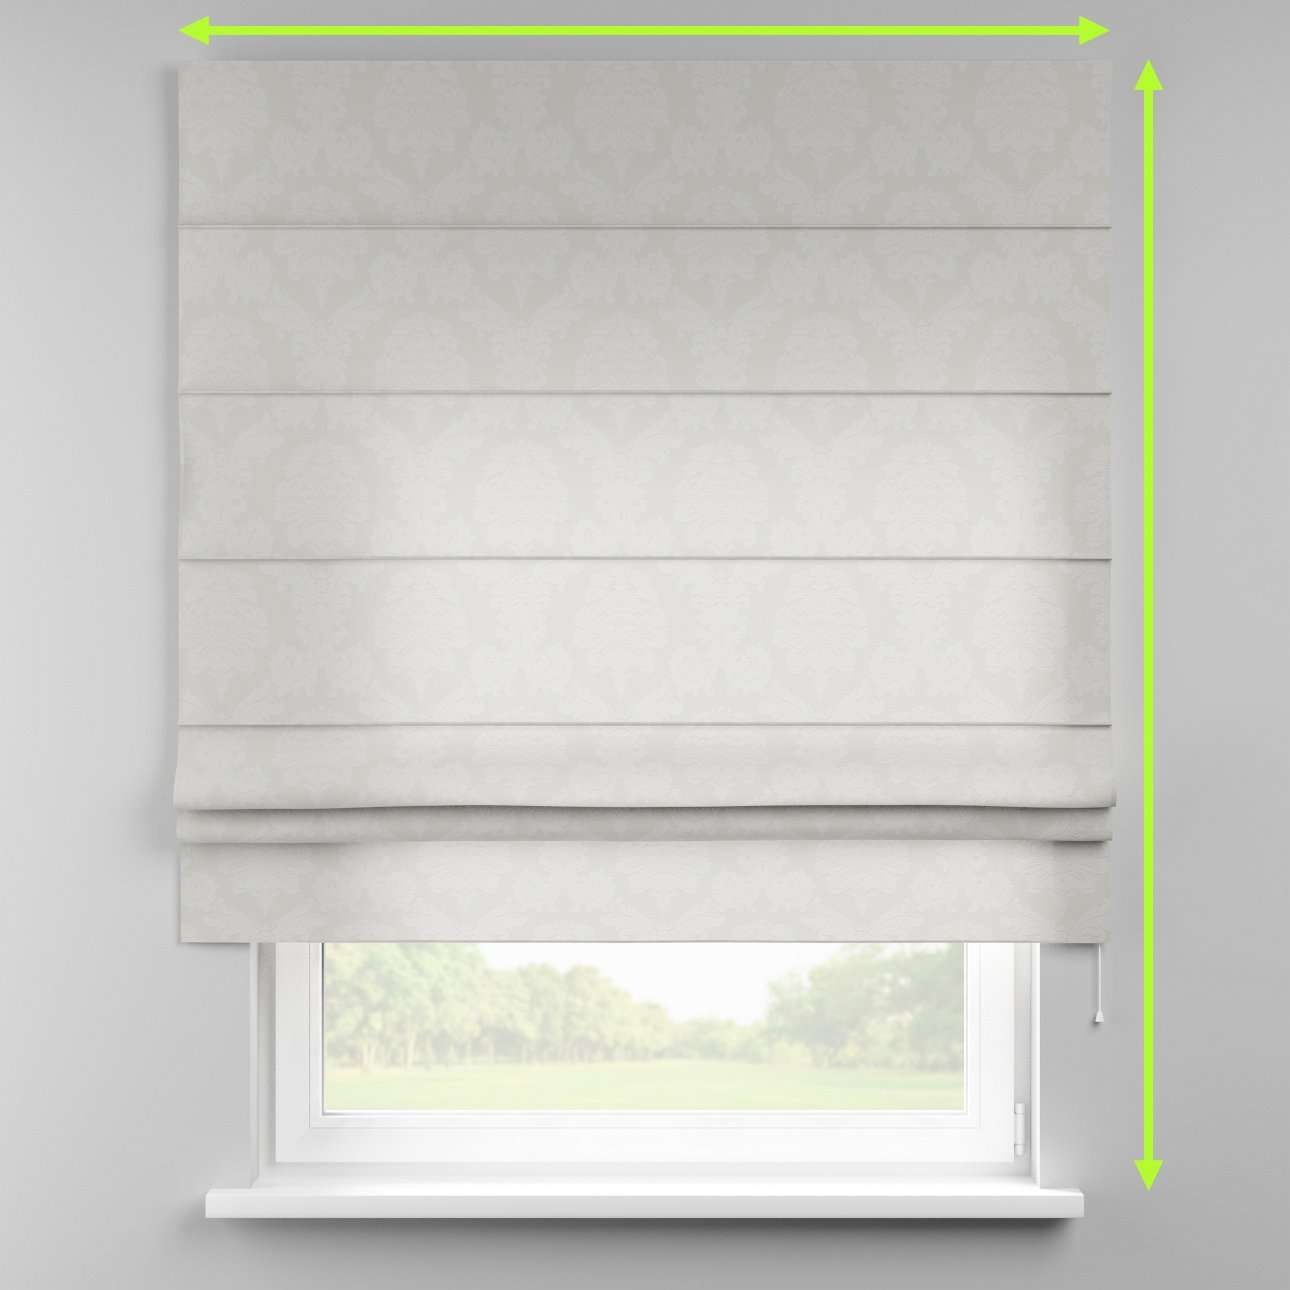 Padva roman blind  in collection Damasco, fabric: 613-81